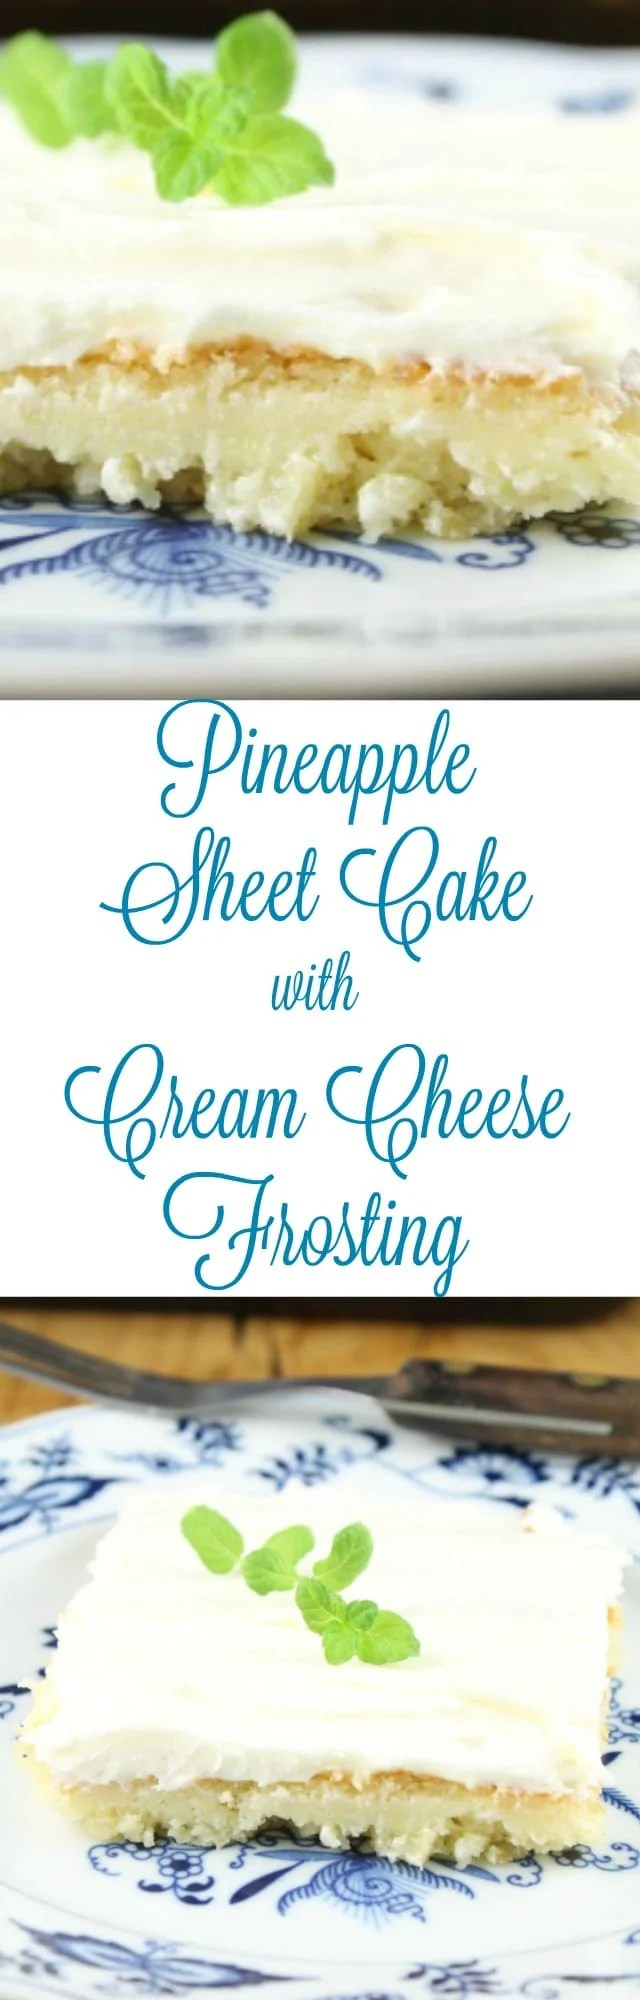 Delicious Dessert Recipe for Pineapple Sheet Cake with Cream Cheese Frosting from MissintheKitchen.com